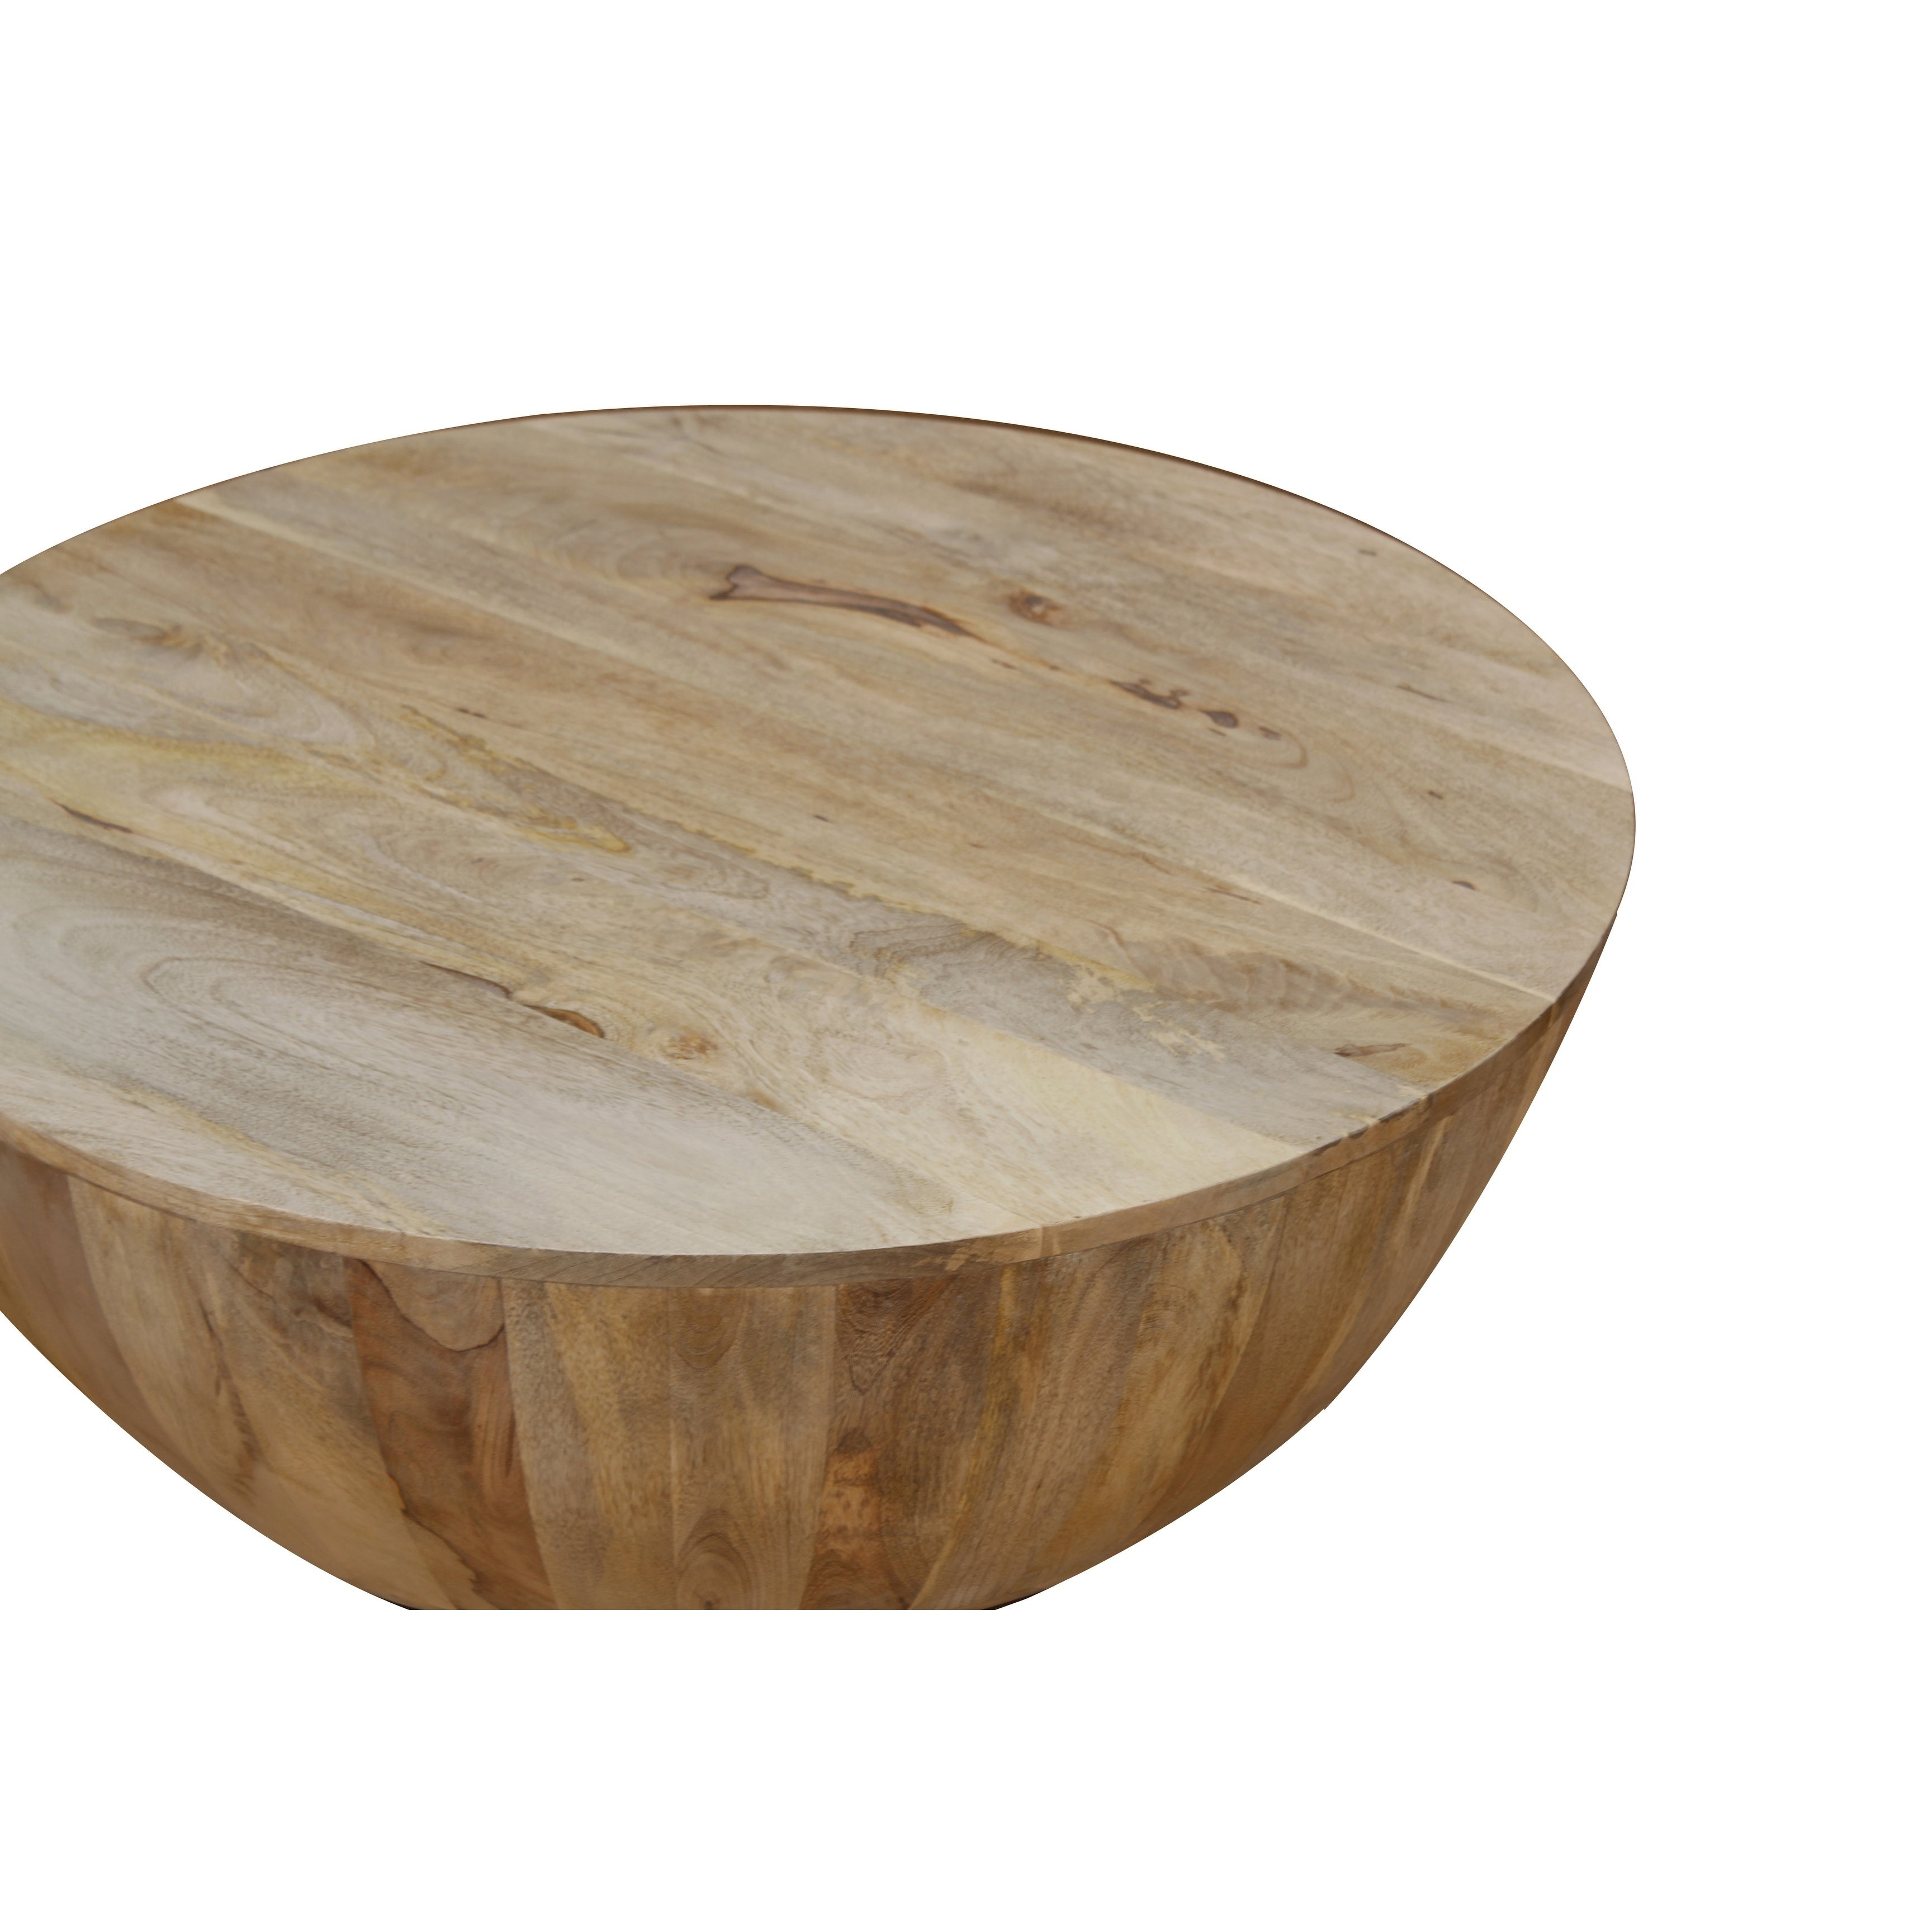 Light Colored Wood Coffee Table.Distressed Mango Wood Round Coffee Table Light Brown